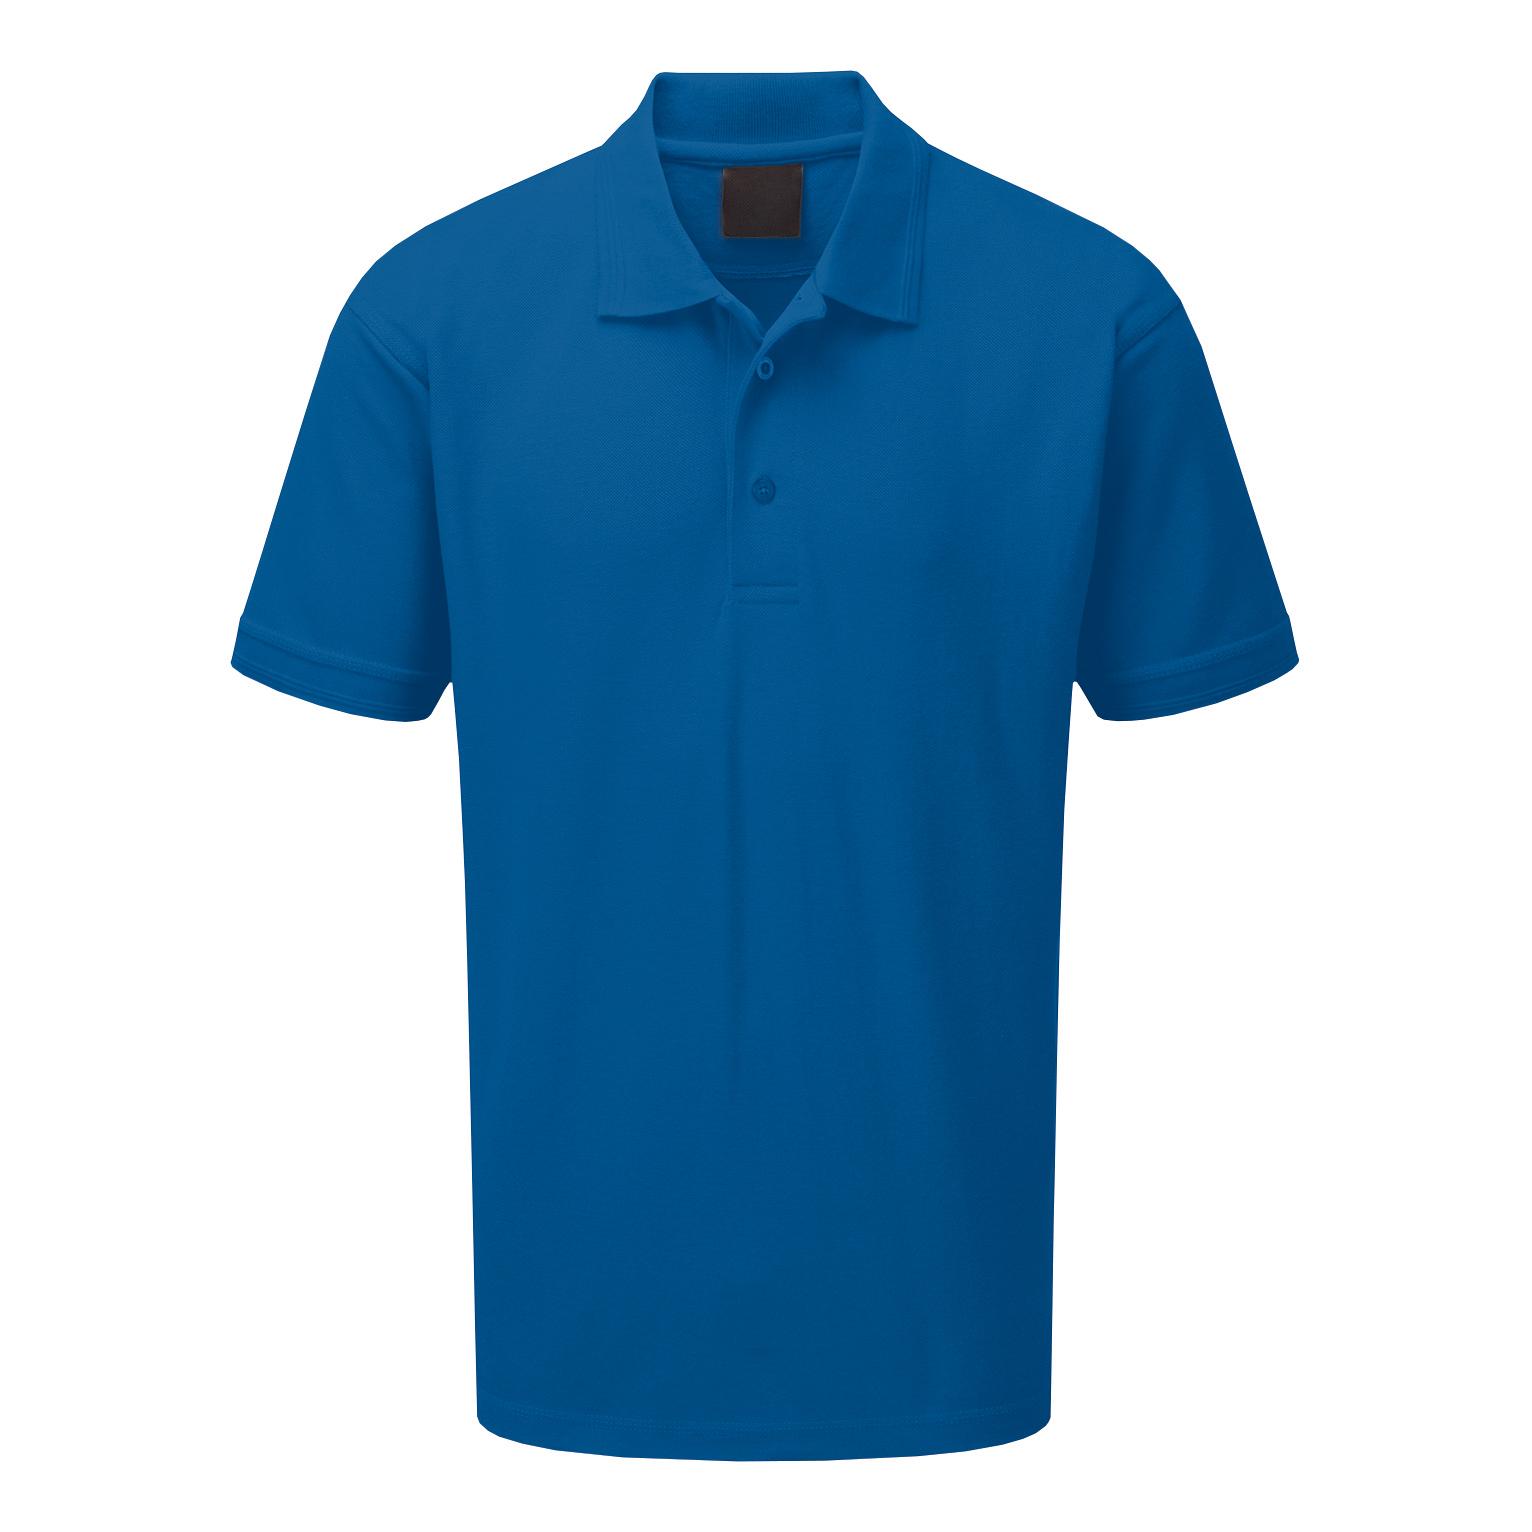 Premium Polo Shirt Triple Button 220gsm Polycotton 3XL Royal Blue Ref CLPKSRXXXL *Approx 3 Day Leadtime*